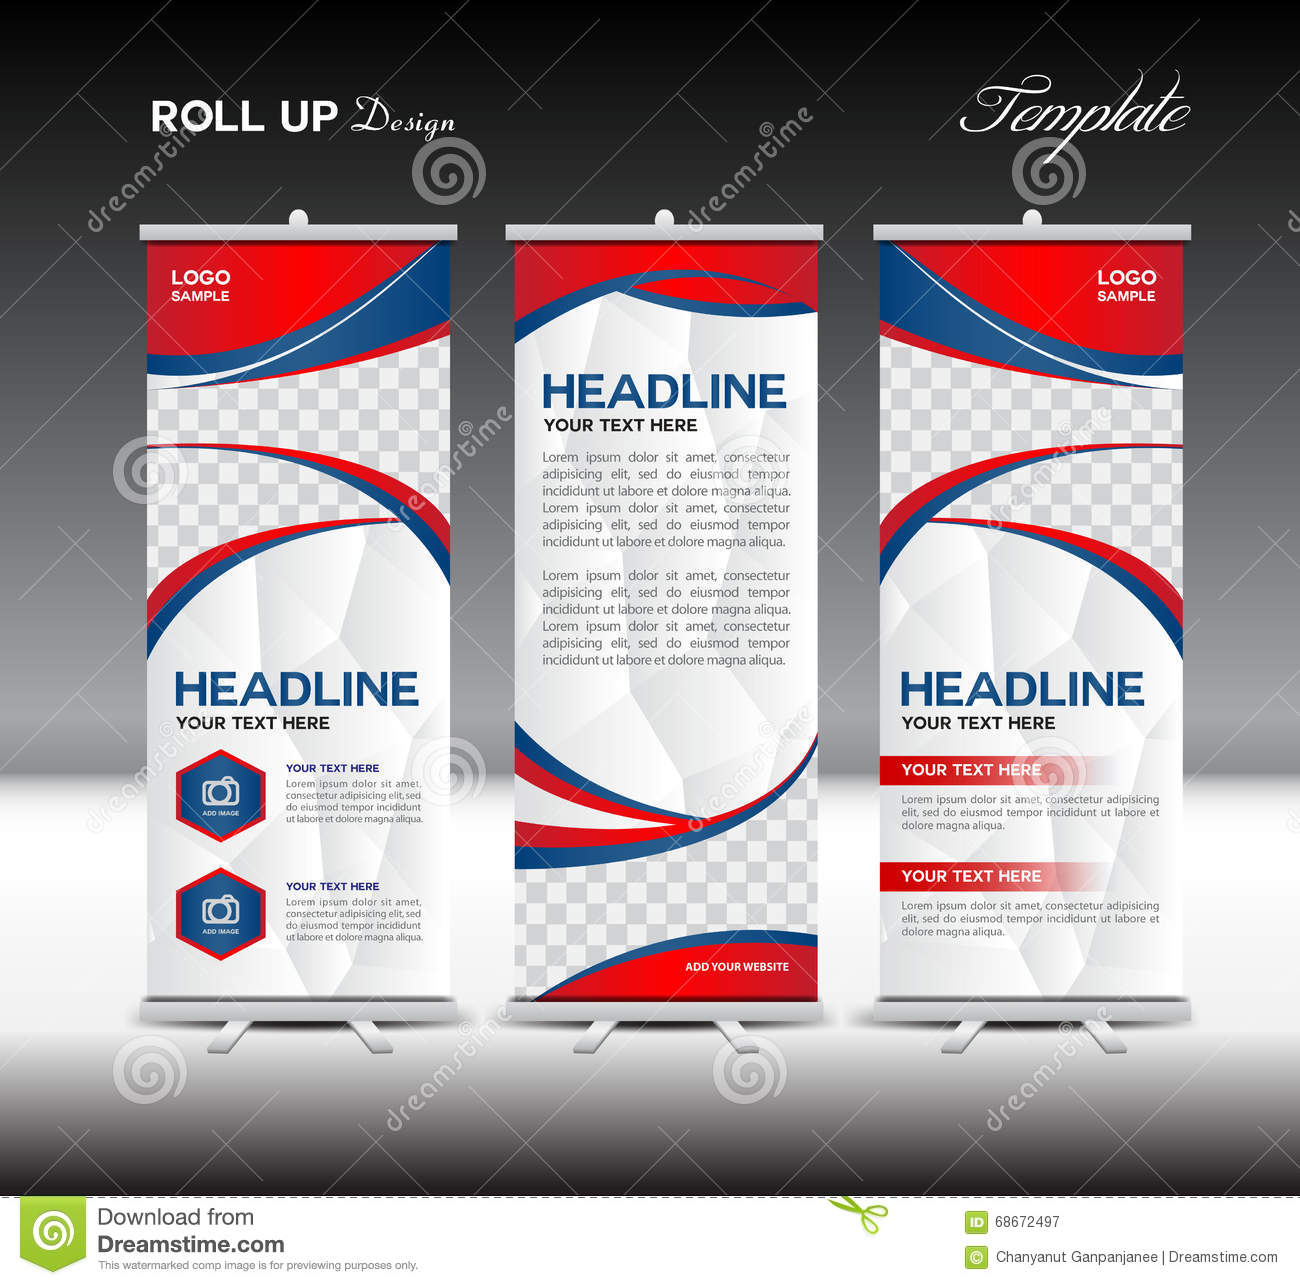 Exhibition Stand Design Template : Red and blue roll up banner template vector illustration